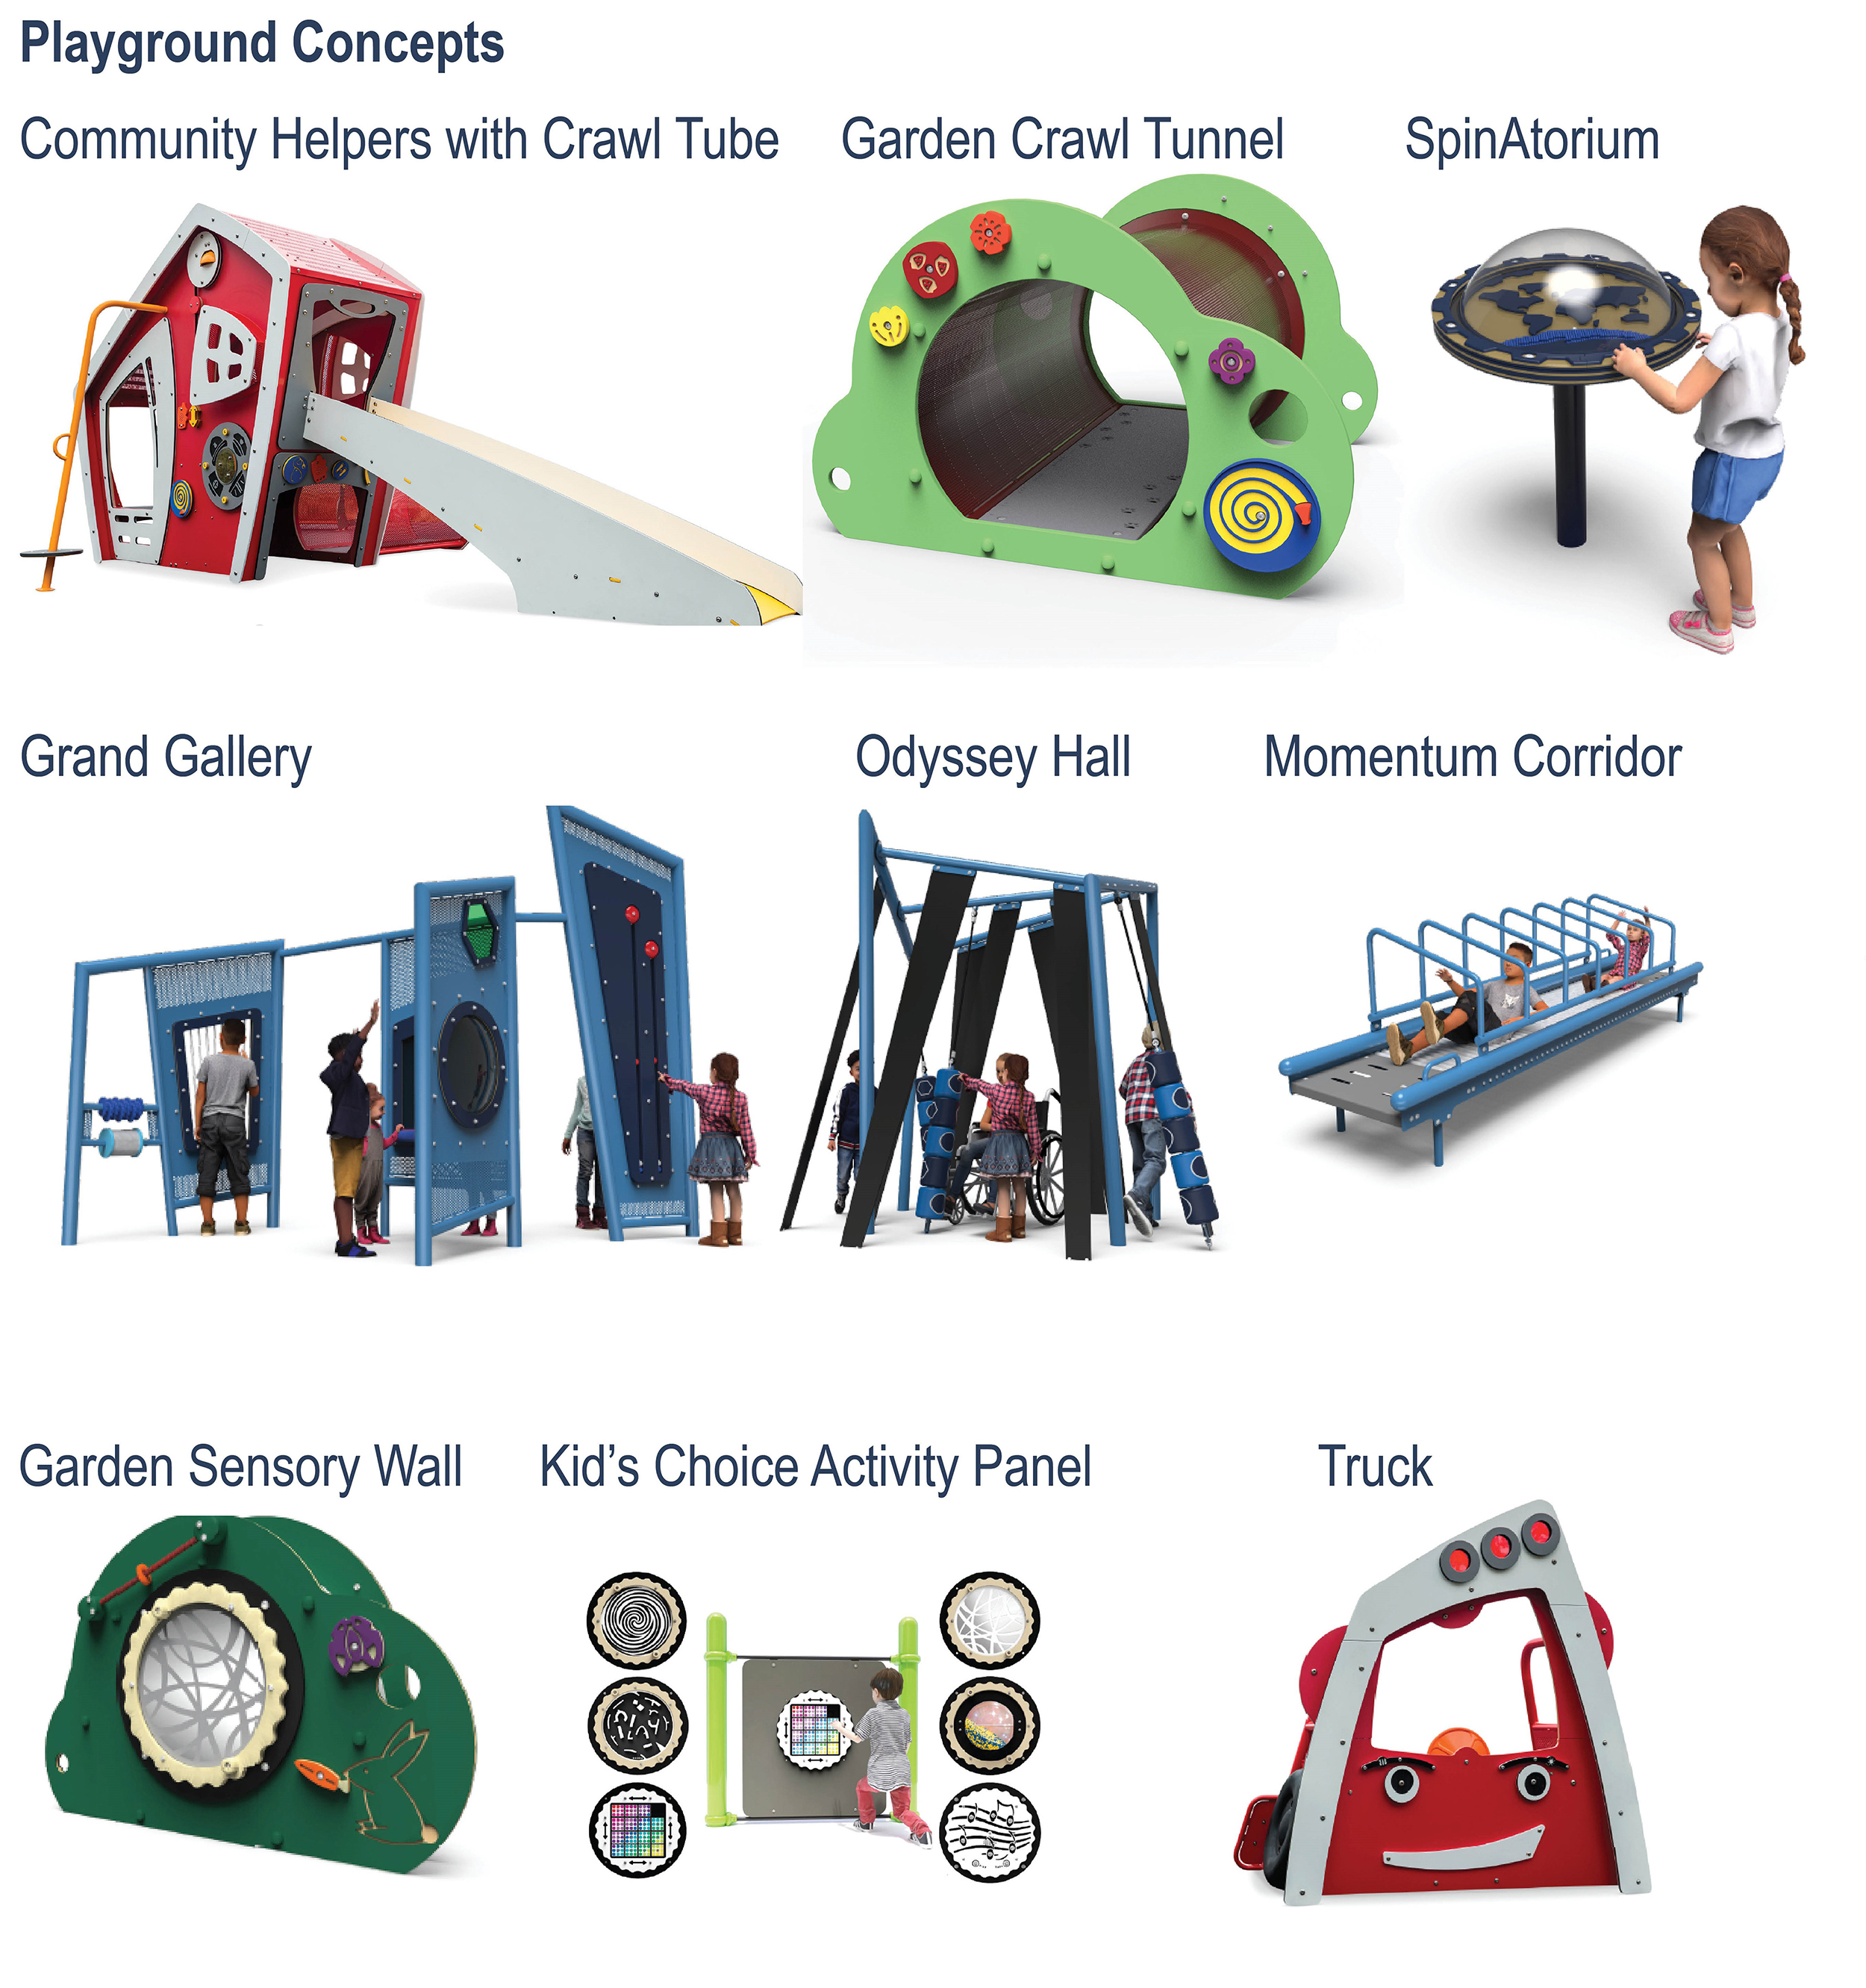 An image that includes nine different themed playground structures proposed for the new playground. The play elements are labeled as follows: community helpers with crawl tube, garden crawl tunnel, spinatorum (a standing globe with spin toy functions), grand gallery (multiple standing play panels), odessey hall (small labyrinth or tall standing interactive features), momentum corridor (vertical slide-like tunnel), garden sensory wall (garden-themed green panel with functions), kid's choice activity panels and truck (red).